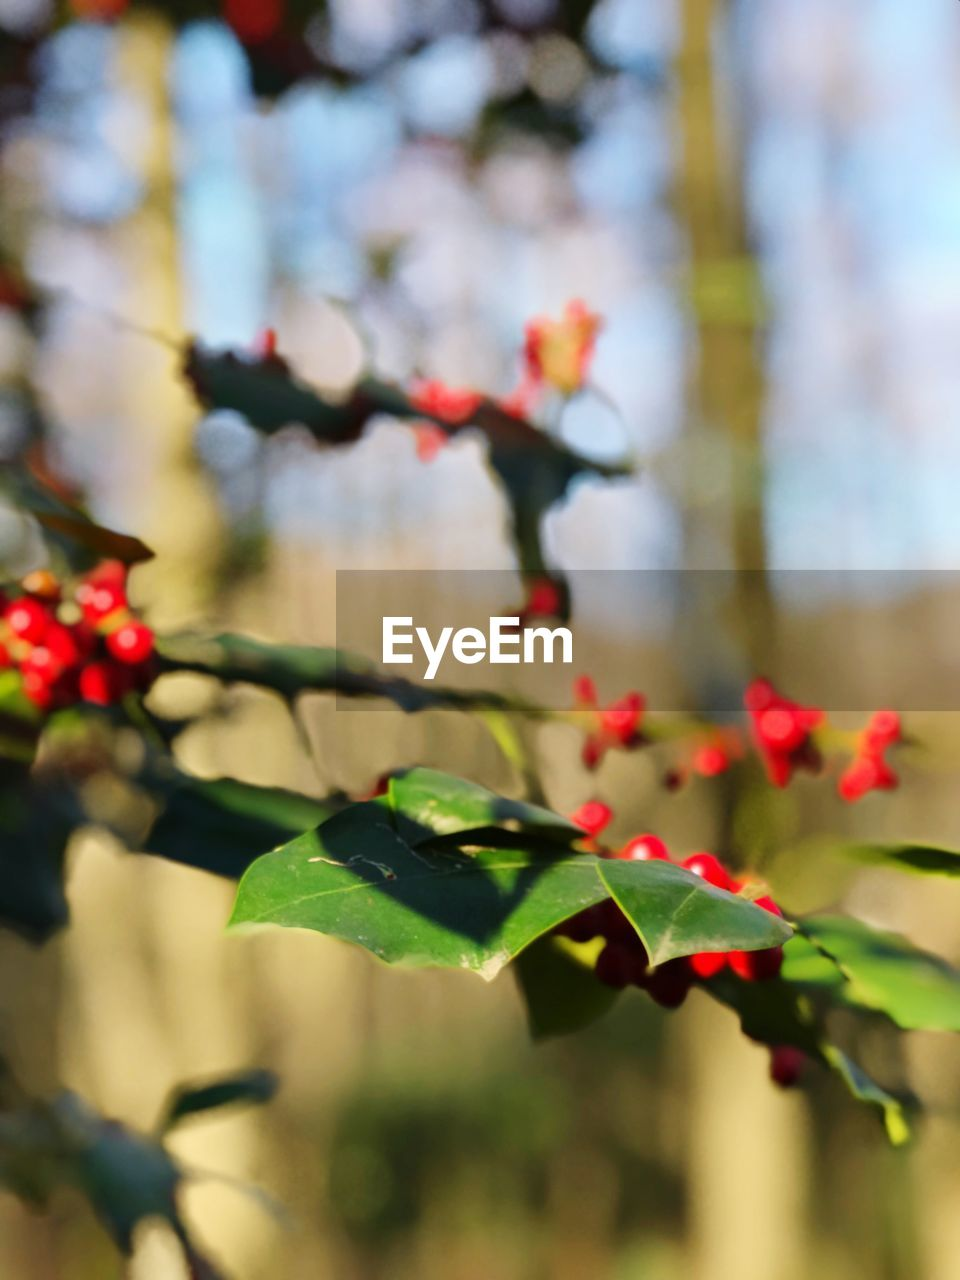 plant, plant part, leaf, growth, beauty in nature, focus on foreground, freshness, nature, close-up, day, flower, no people, flowering plant, selective focus, green color, fragility, vulnerability, red, outdoors, tree, flower head